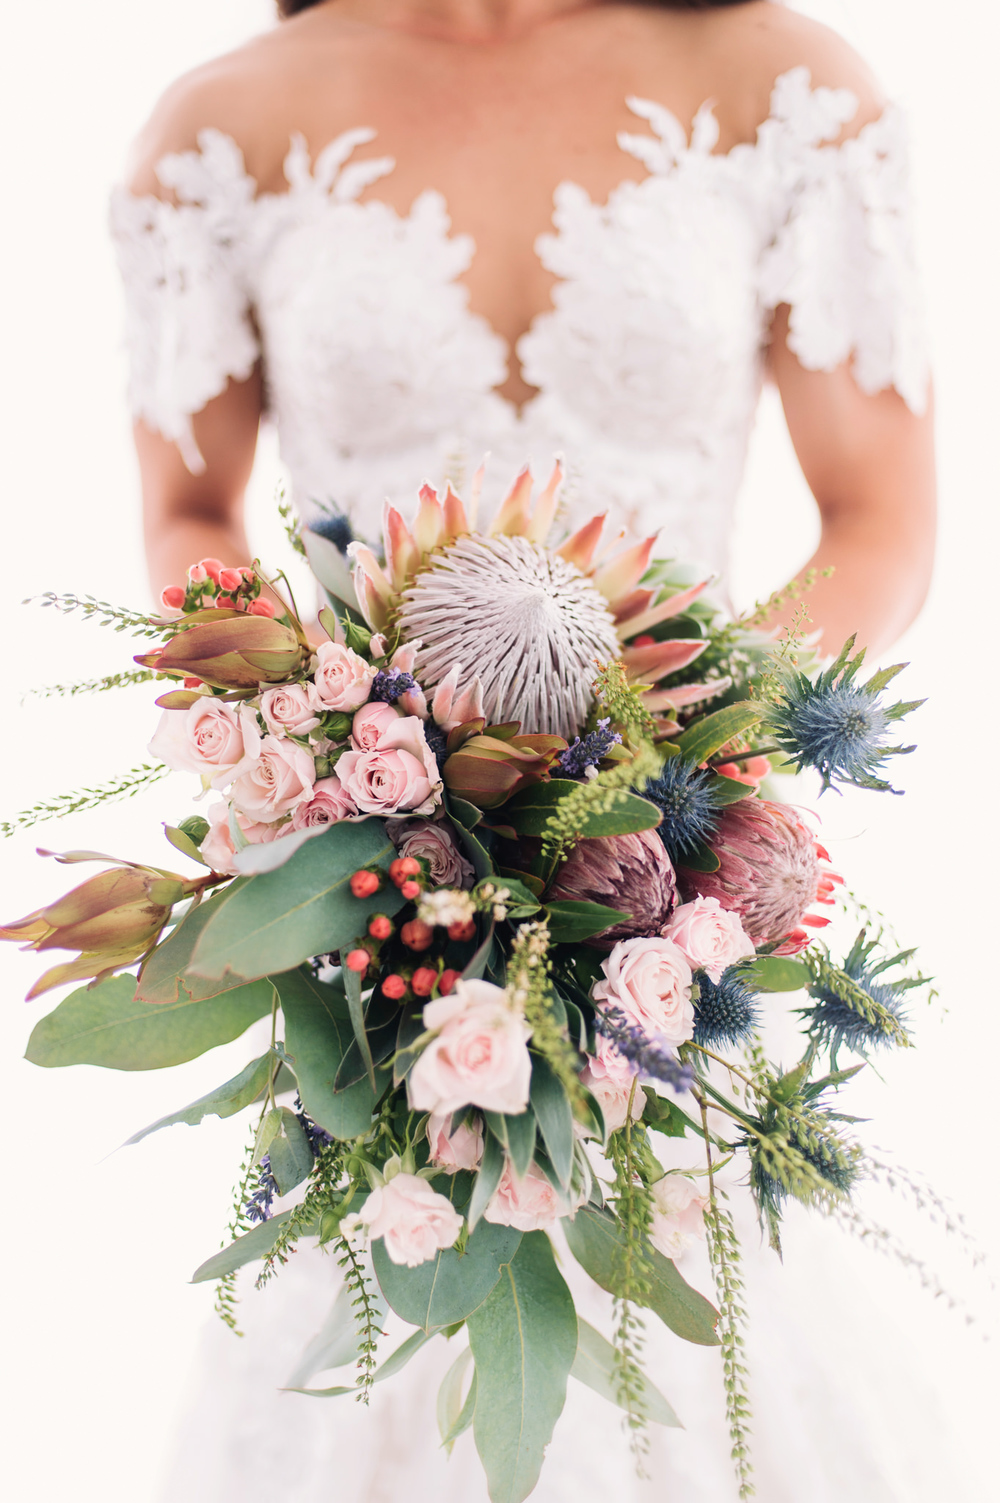 Stunning bouquet by Bek Burrows